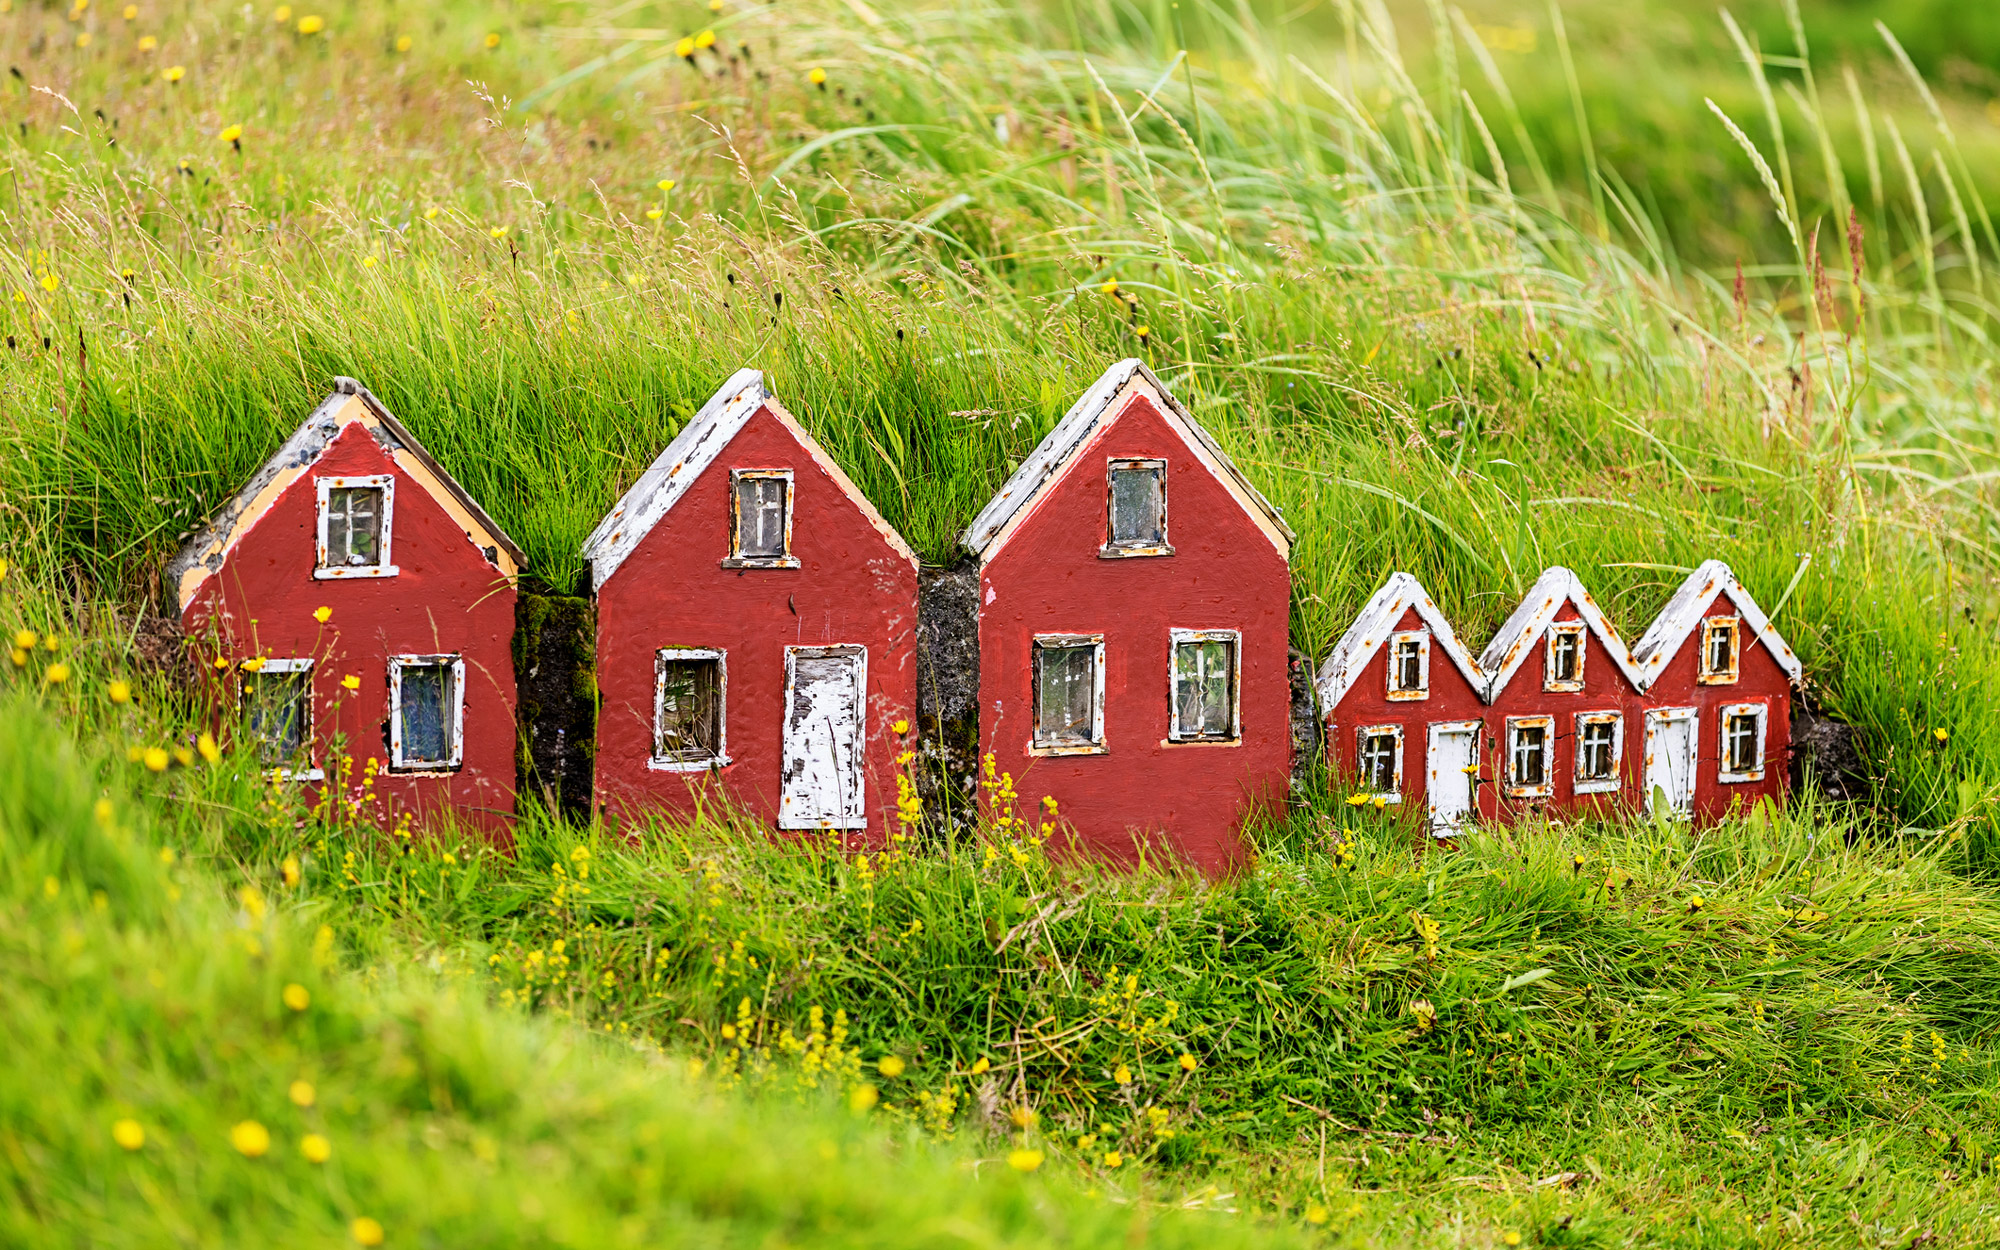 Elf-Community-Grass-House-ICELAND0816.jpg